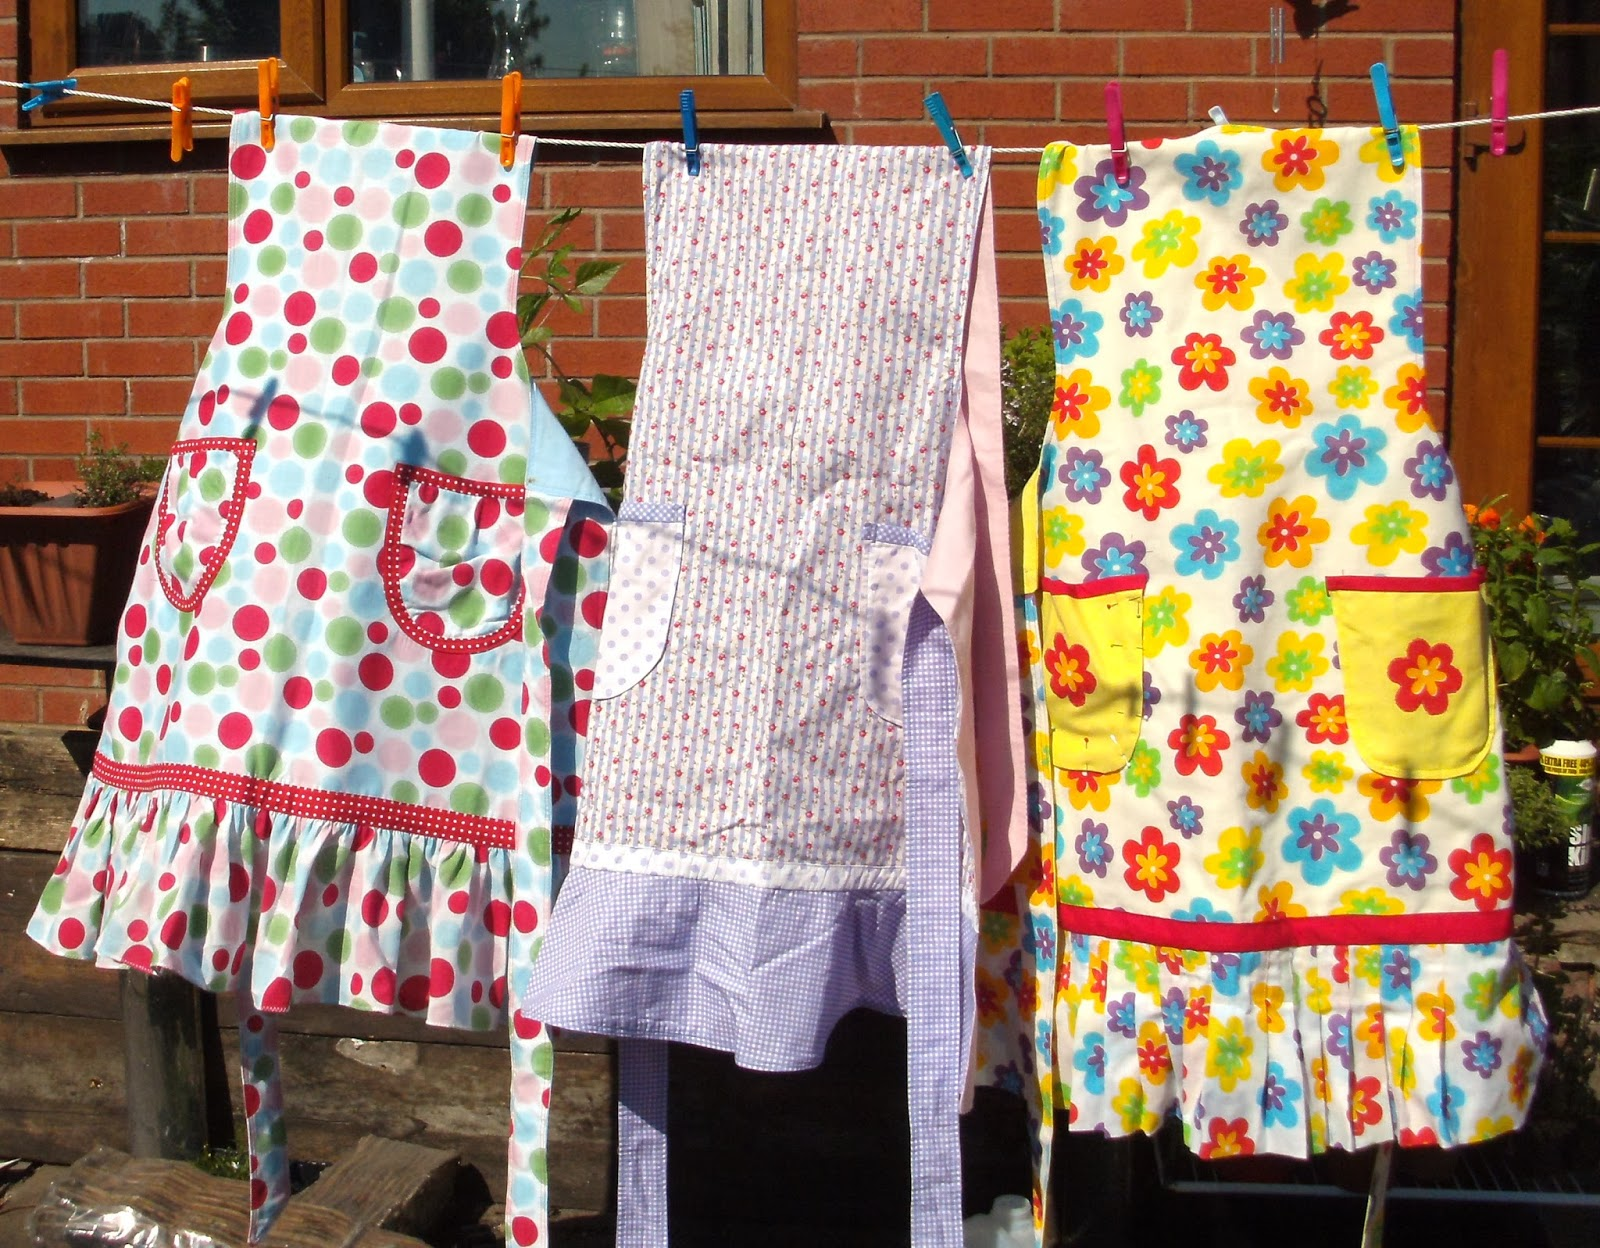 Three colourful aprons on the washing line